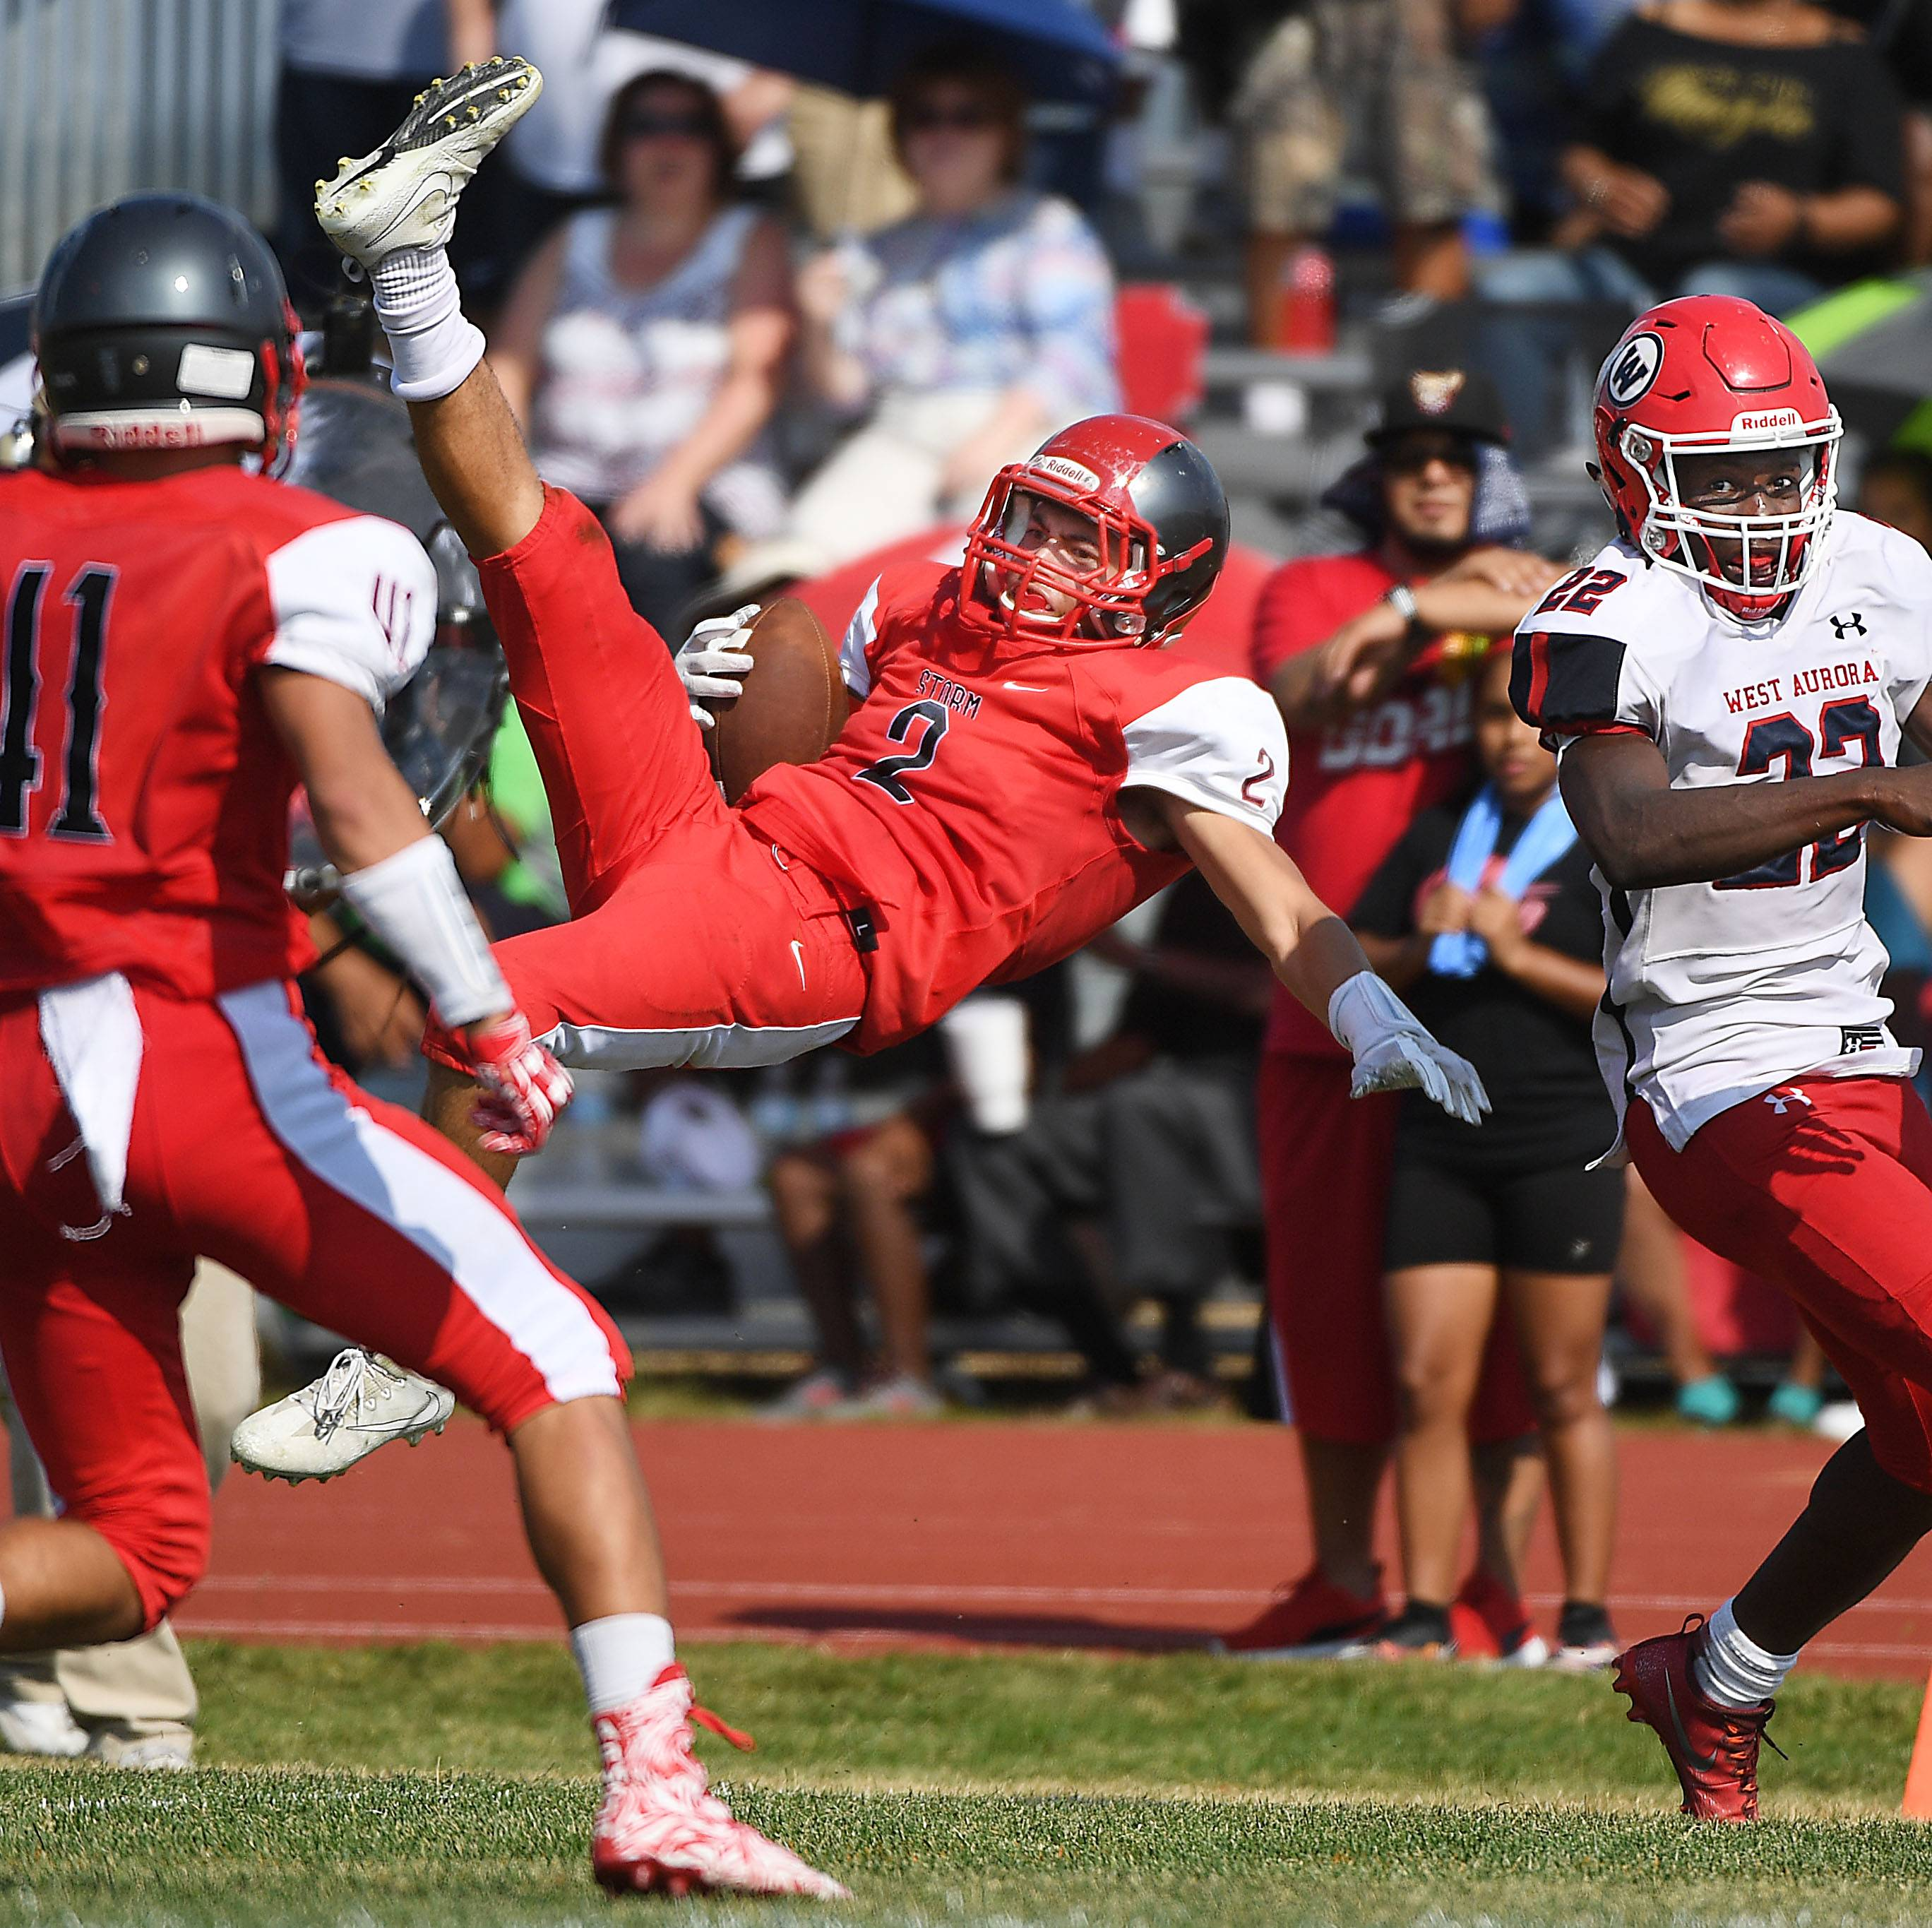 South Elgin's Azxavier Salinas comes down on his back out-of-bounds as he intercepts a West Aurora pass intended for Hezekiah Salter Saturday in South Elgin.